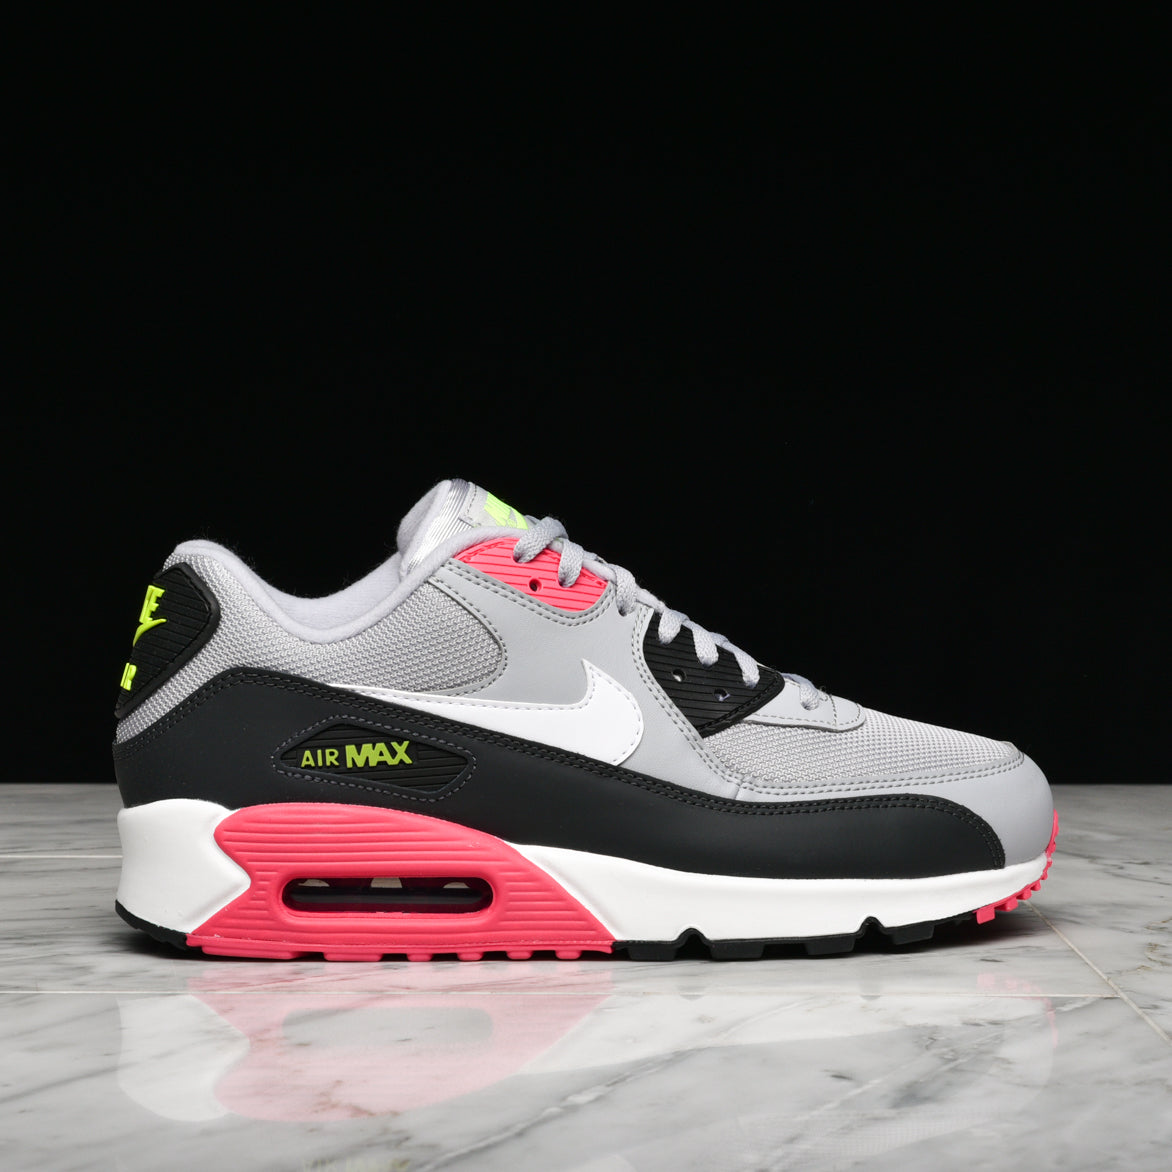 on sale cc2ed a9211 AIR MAX 90 ESSENTIAL - WOLF GREY / WHITE / RUSH PINK